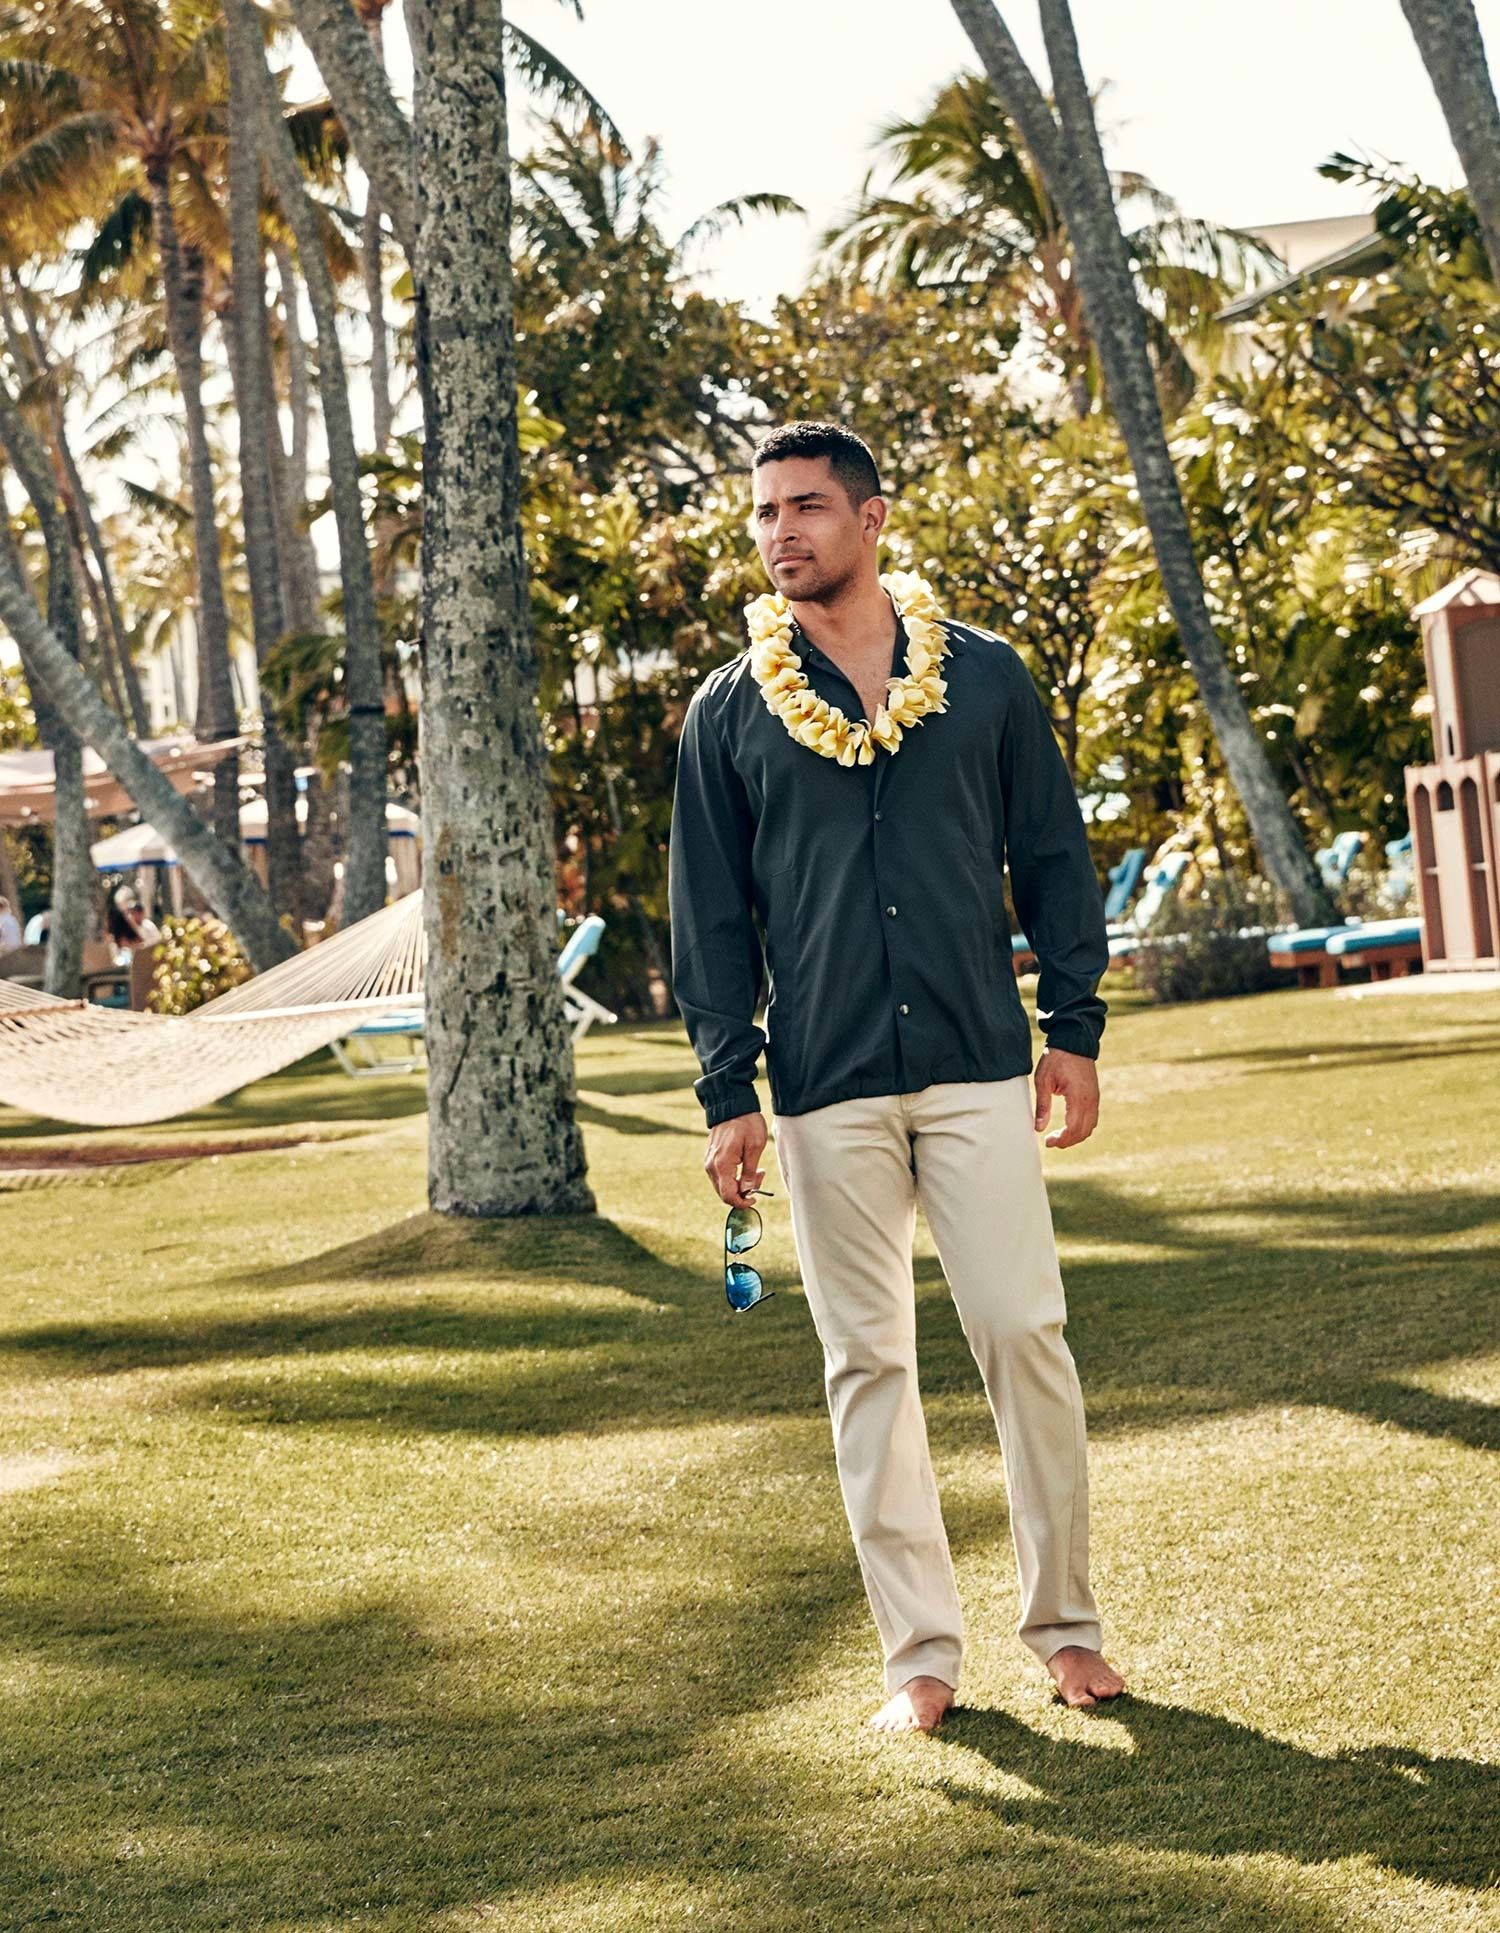 Wilmer Valderrama barefoot on the grass wearing a yellow lei and a green button down shirt